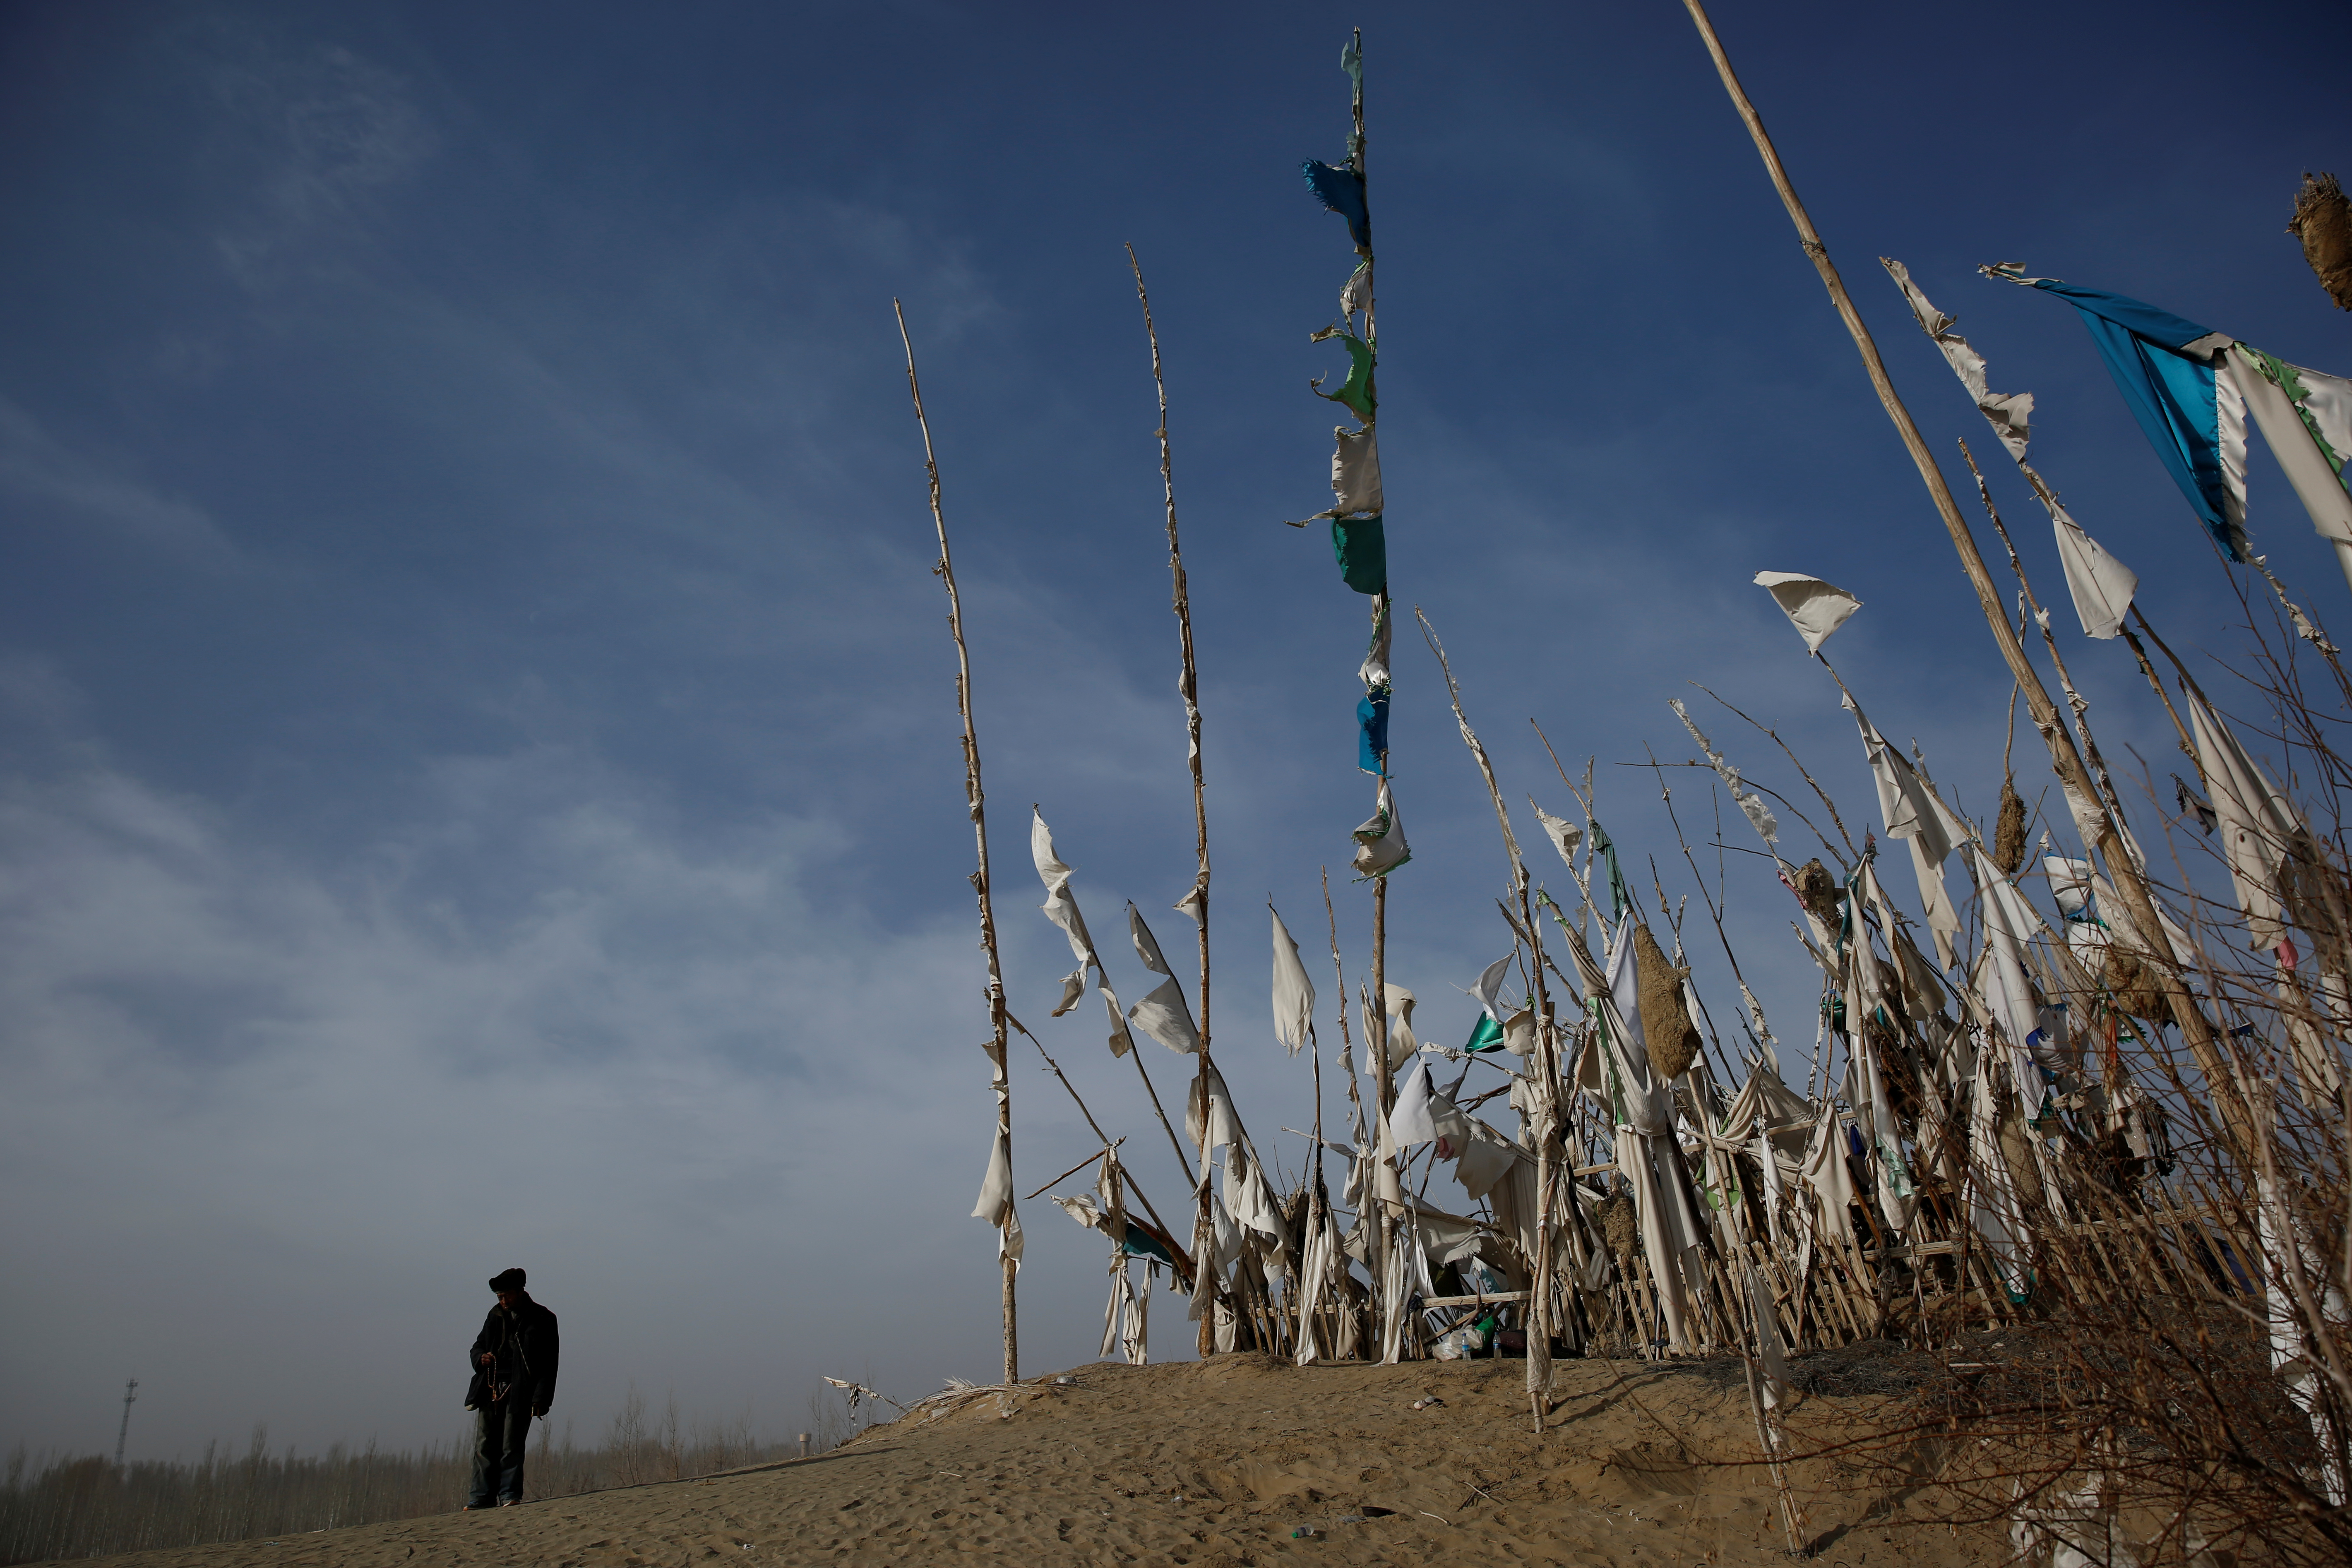 An ethnic Uighur stands in front of a grave at the cemetry surrounding the tomb of Imam Asim in the Taklamakan Desert outside the village of Jiya near Hotan, Xinjiang Uighur Autonomous Region, China, March 21, 2017.